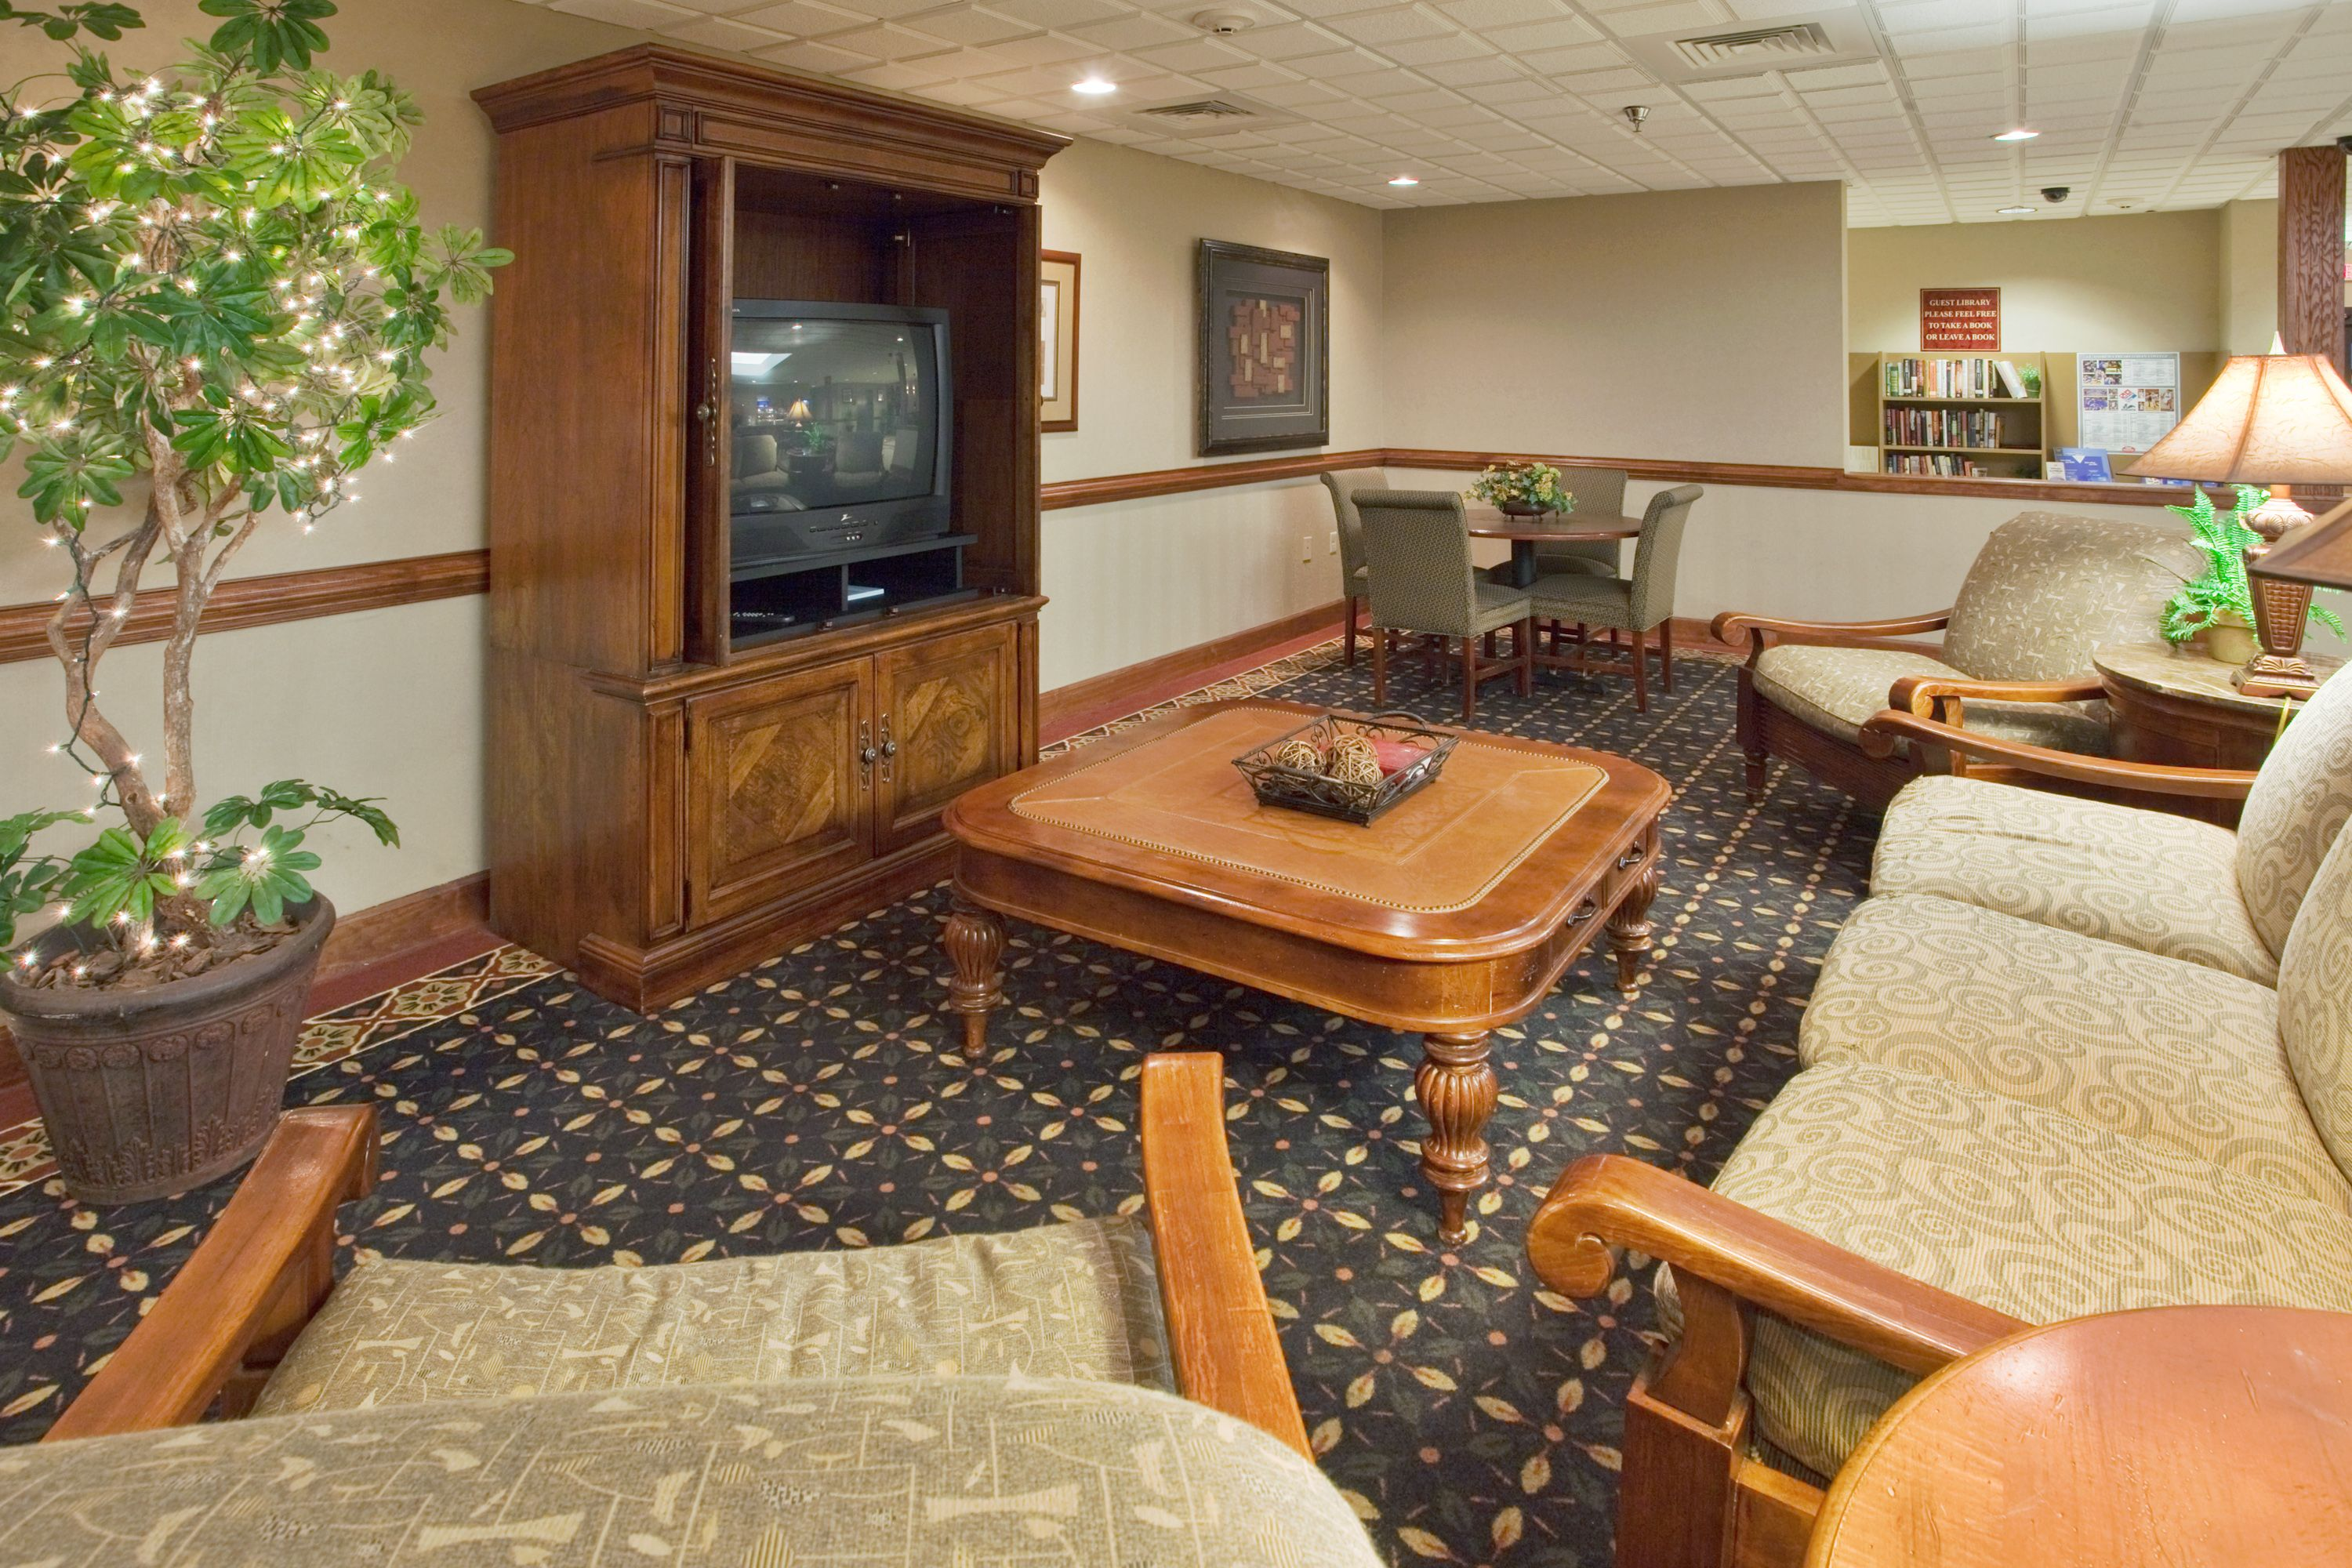 Holiday Inn Express & Suites Laurinburg image 3